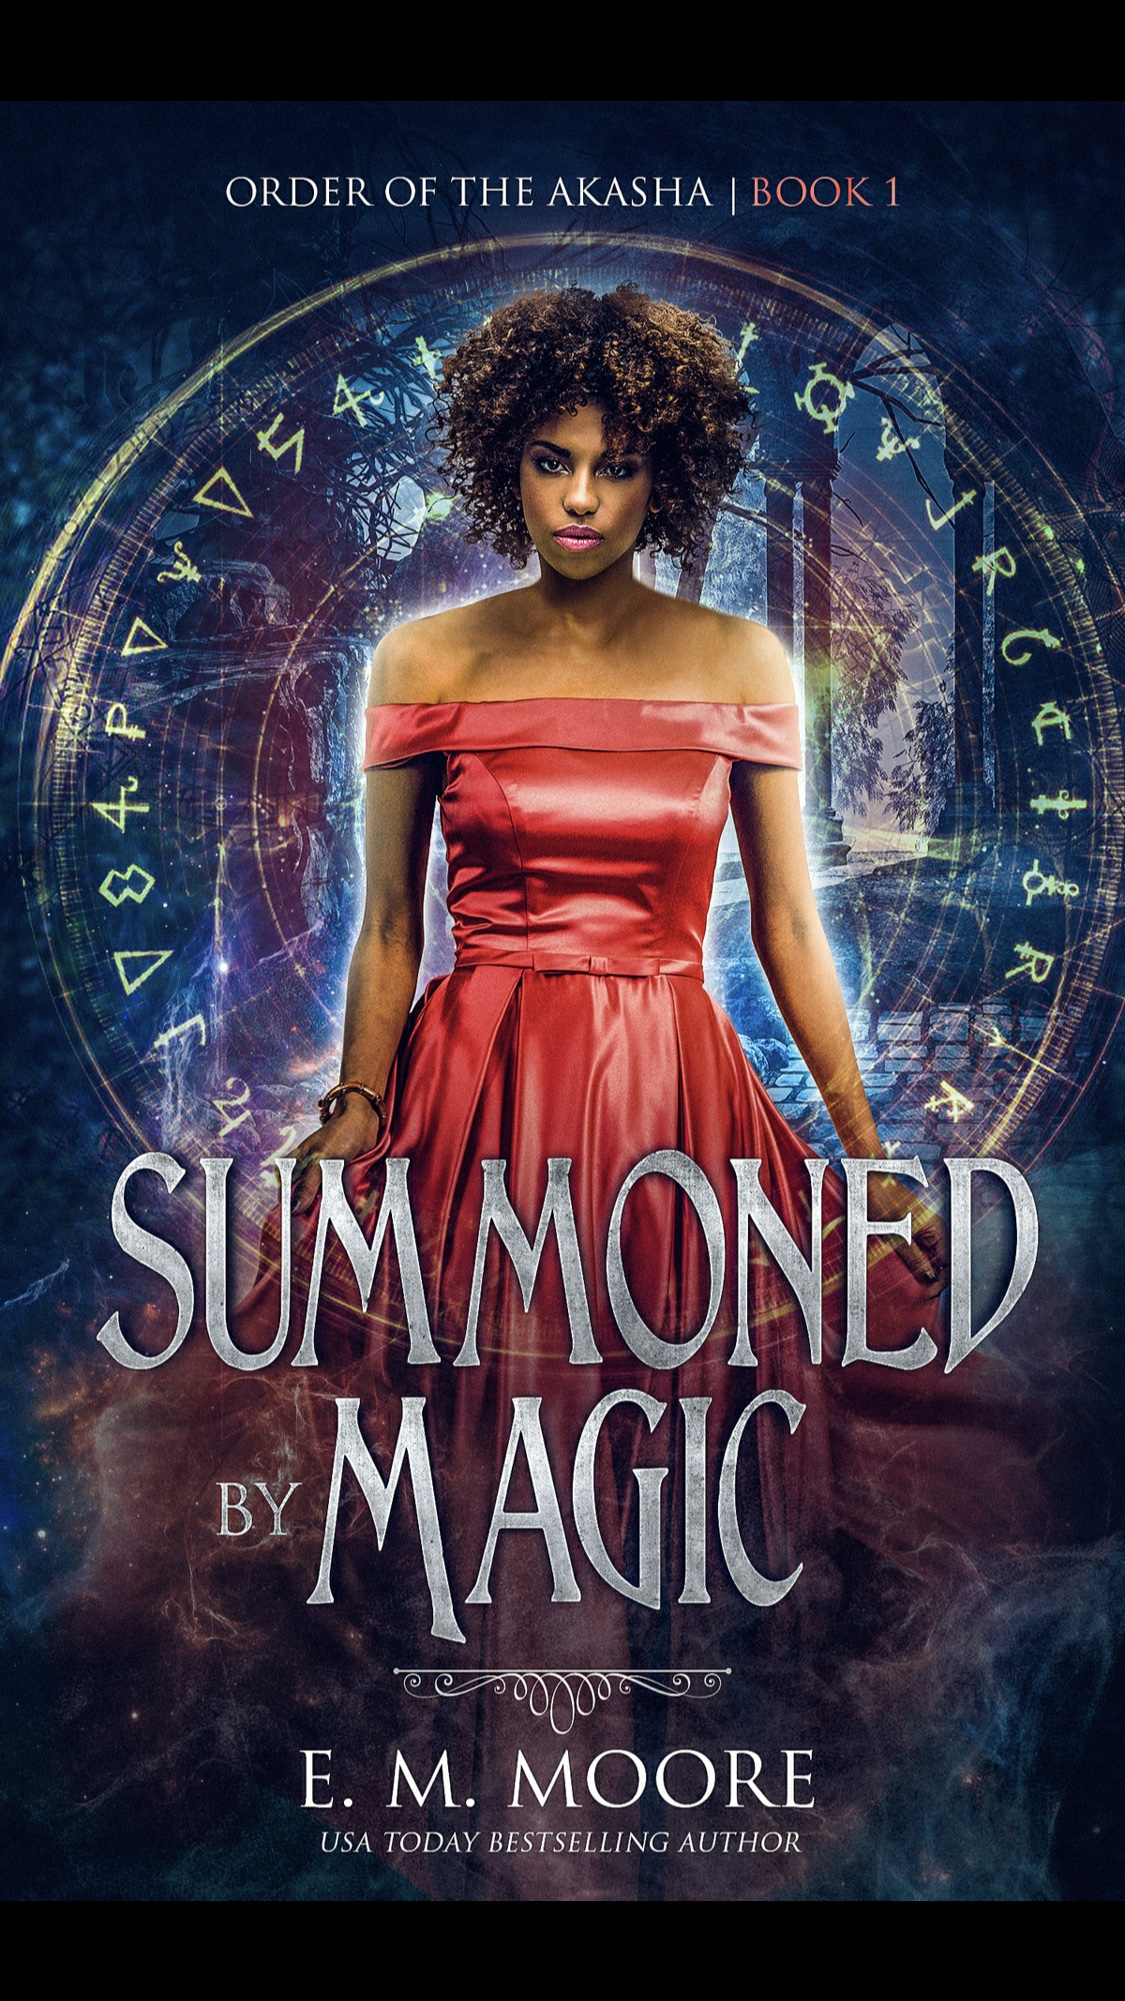 Summoned By Magic by E.M. Moore - Book Review #FastBurn #RH #WhyChoose #UrbanFantasy #ReverseHarem #FirstInSeries